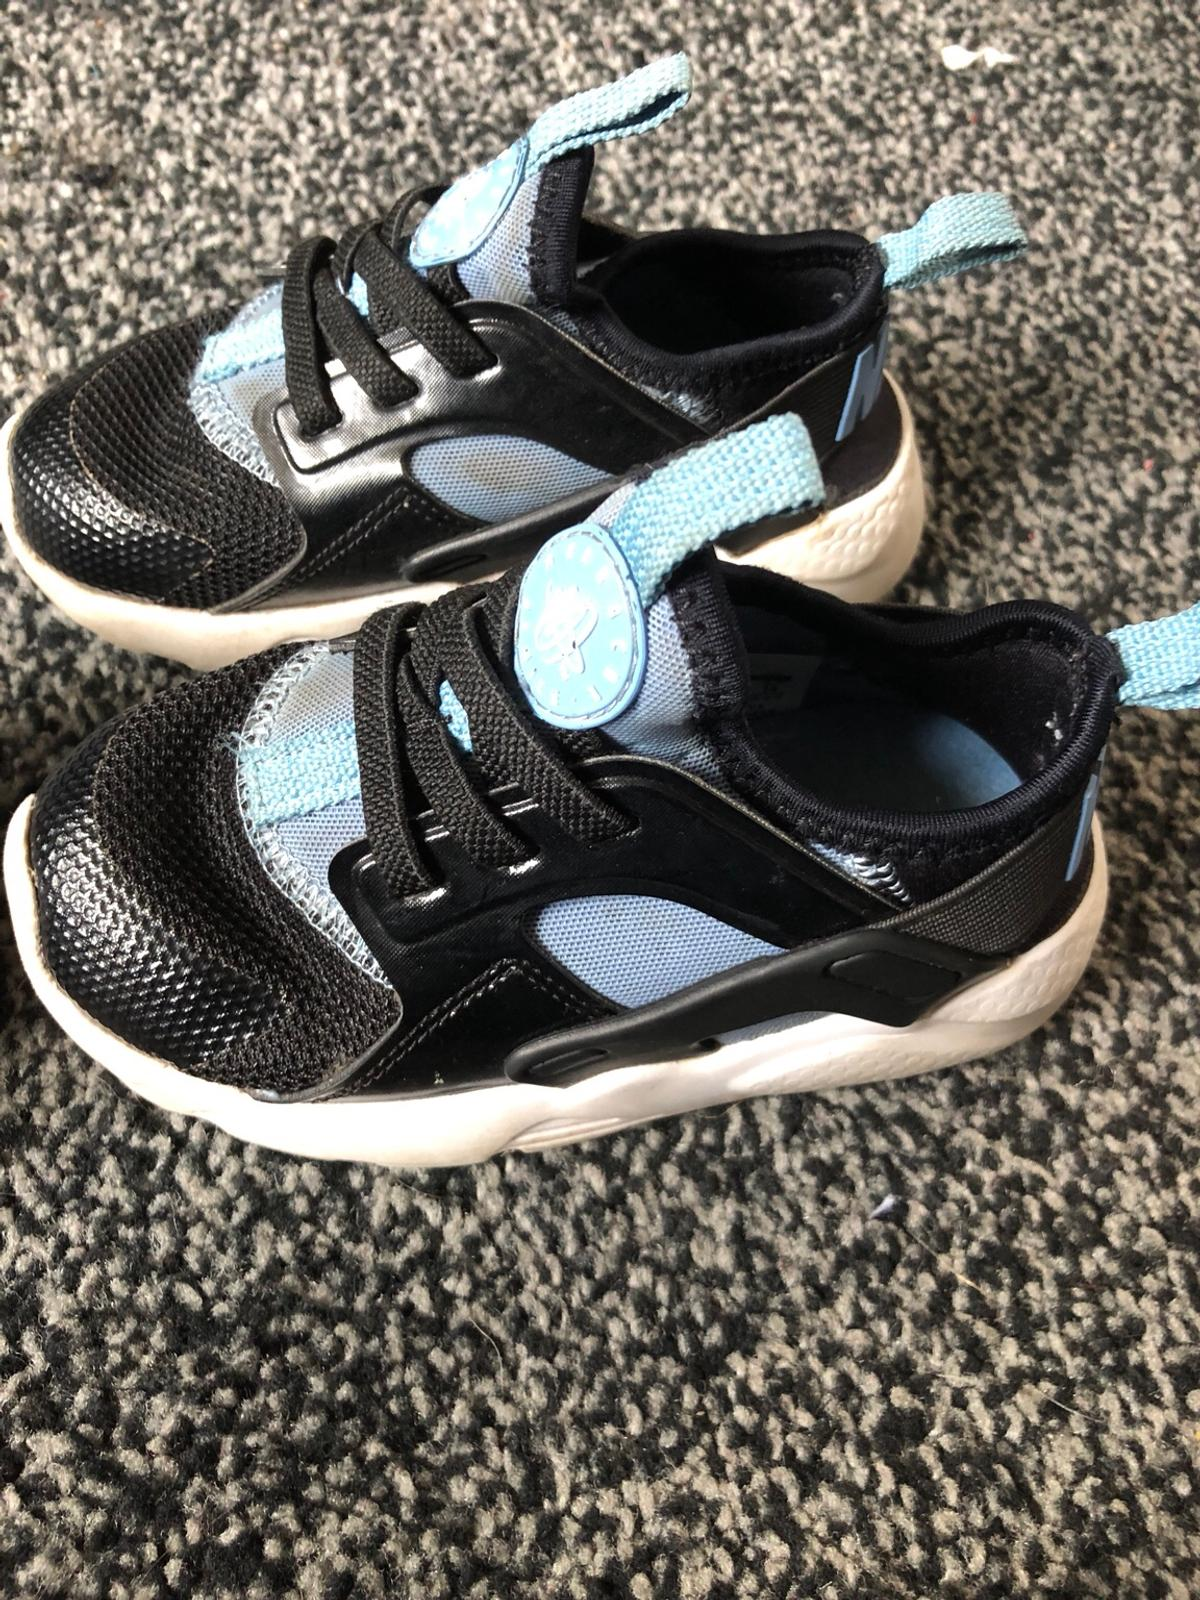 1c5530a798 Kids nike huaraches UK 7.5 in B37 Solihull for £5.00 for sale - Shpock